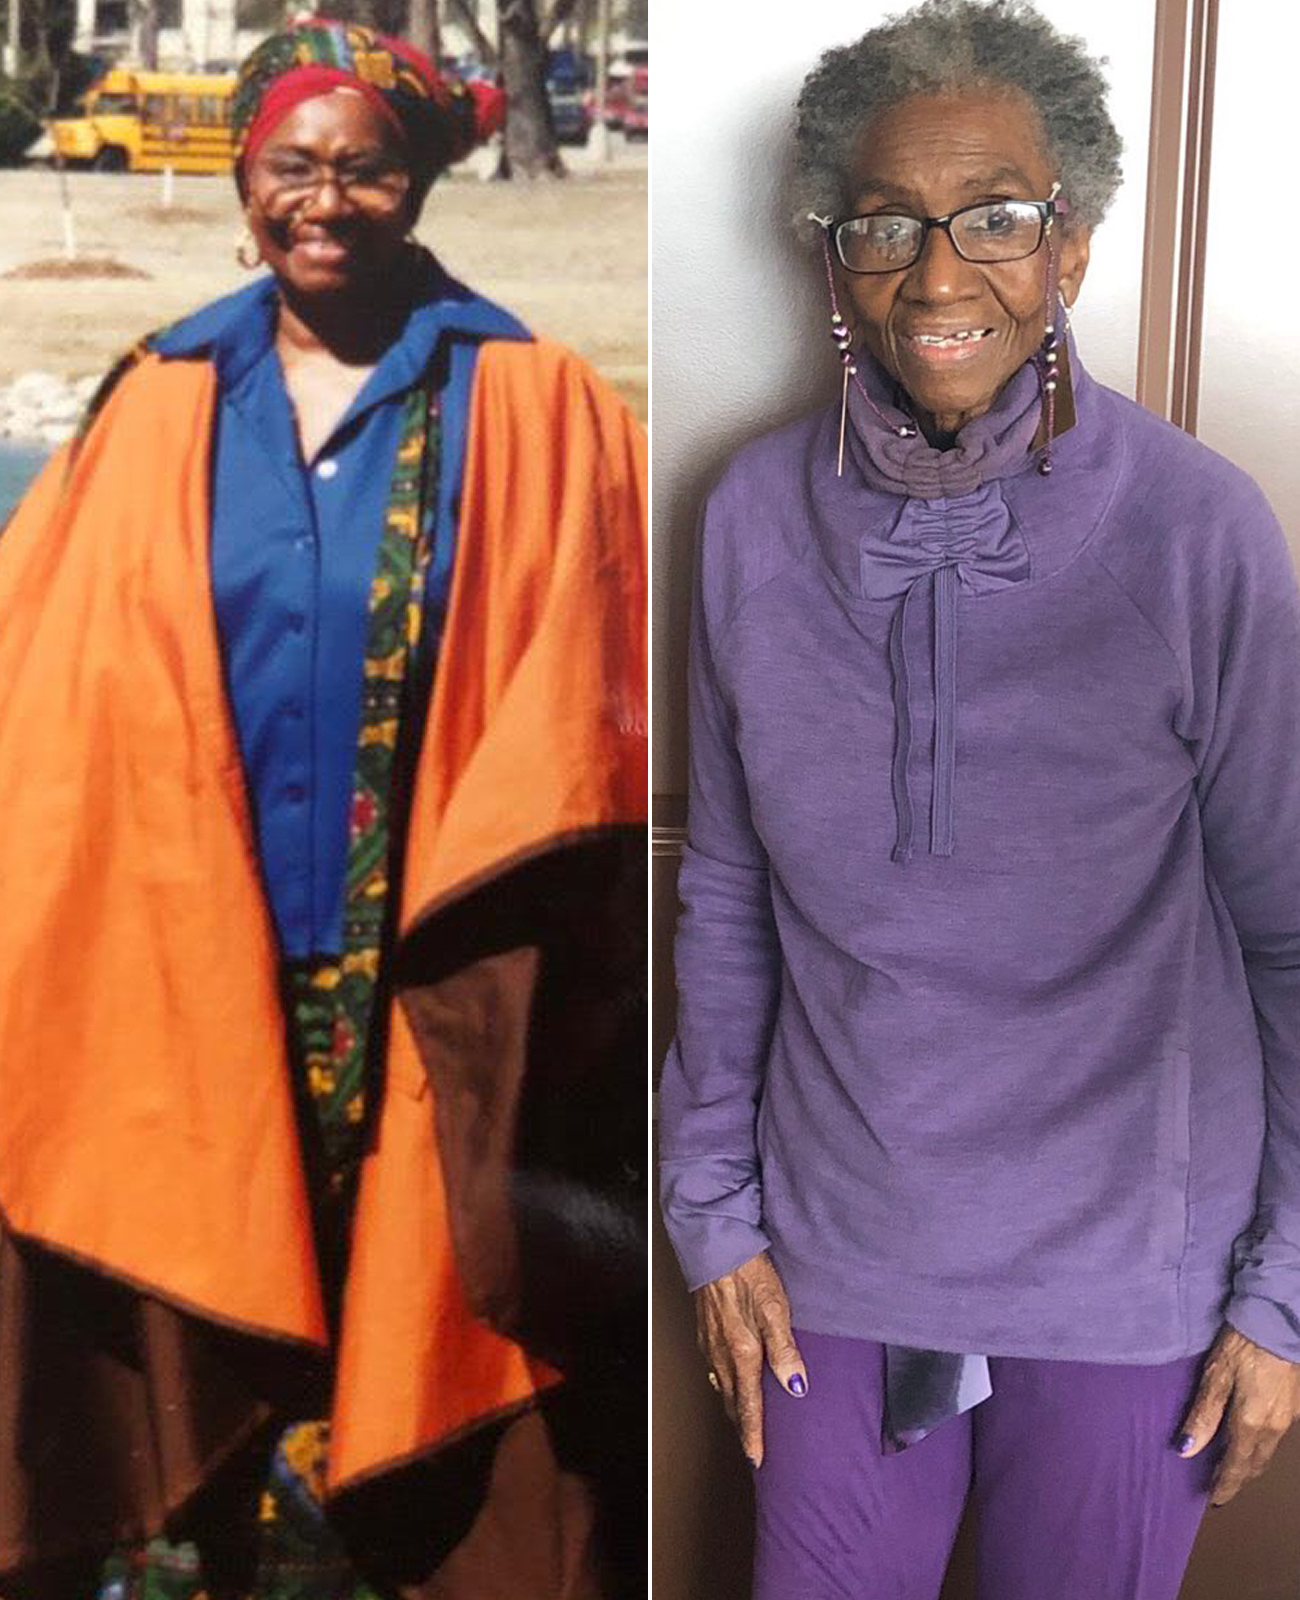 86-Year-Old Woman Loses 120 Lbs. by Walking Around Her 1-Bedroom Apartment